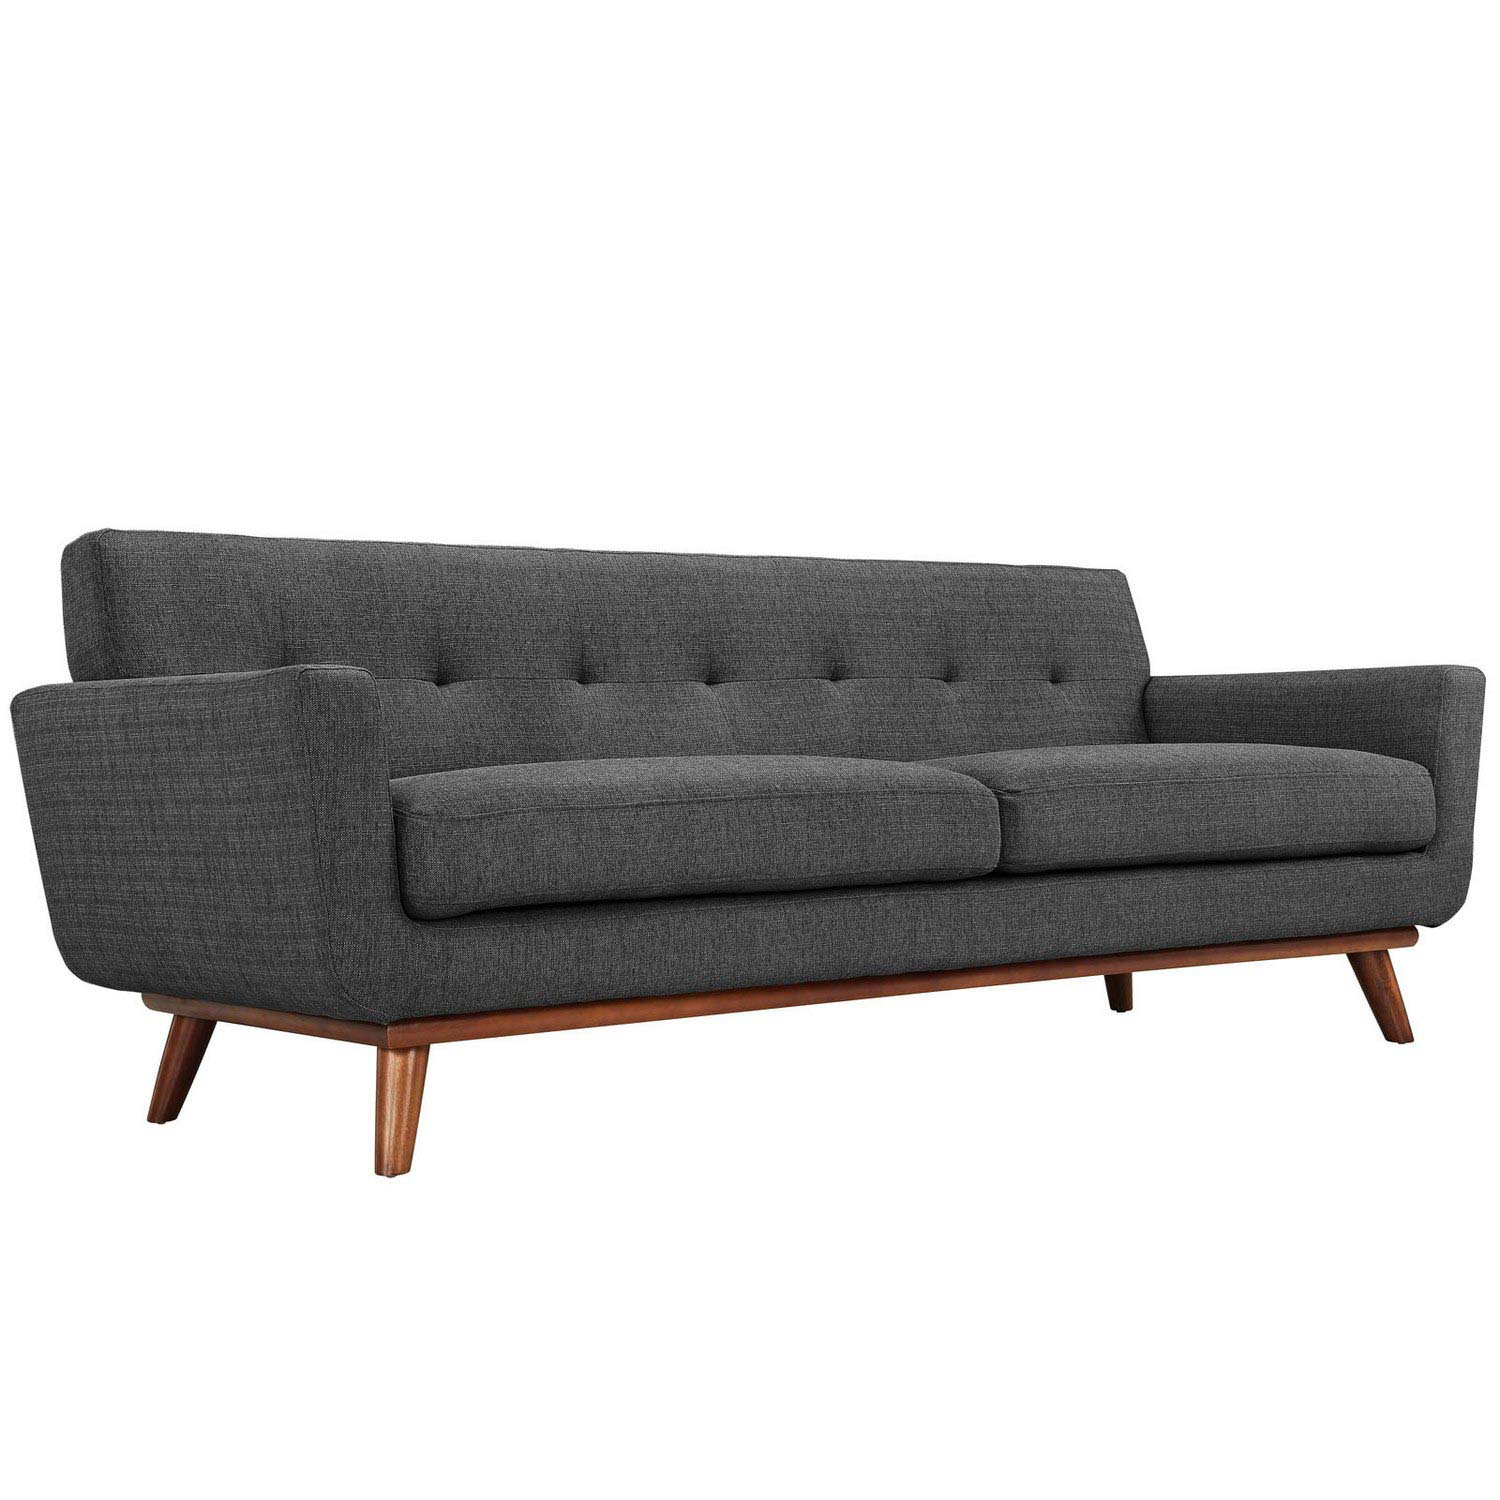 Modway Engage 3 PC Sofa Loveseat and Armchair Set - Gray